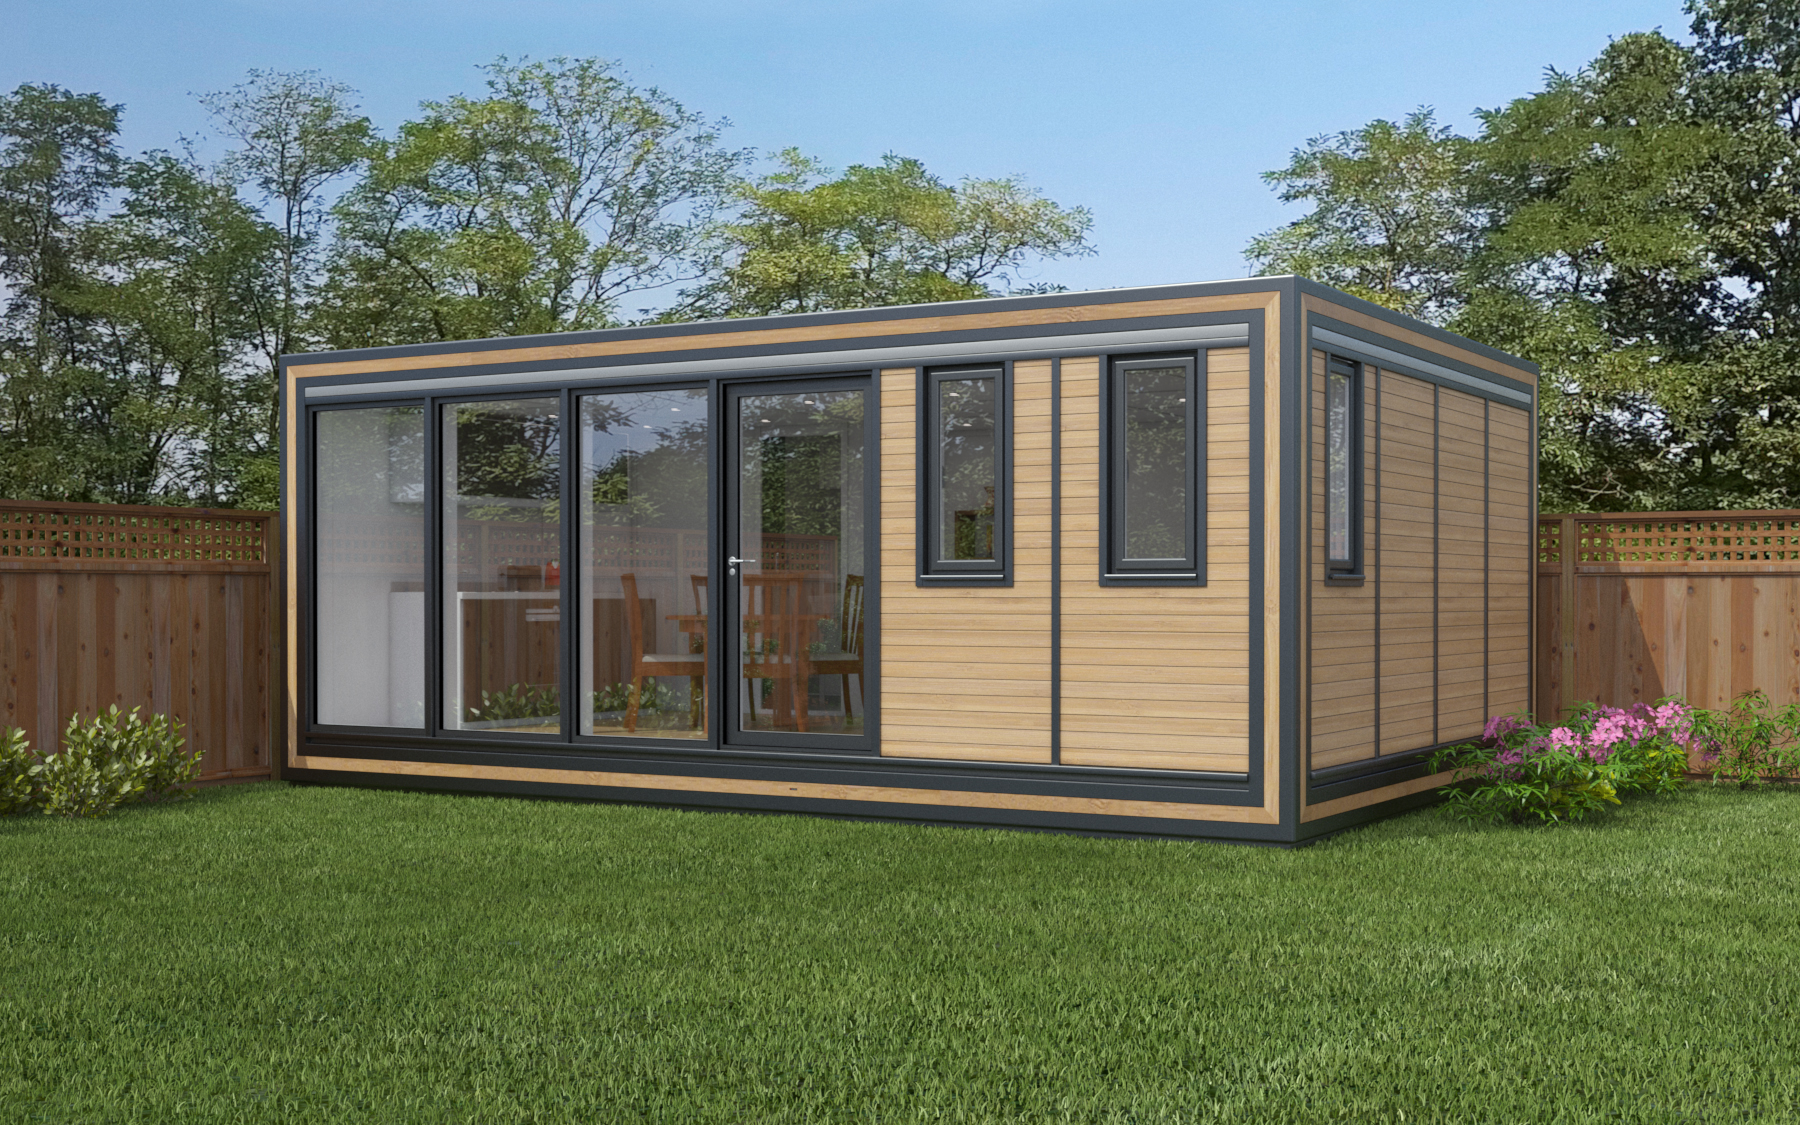 ZEDBOX 640  (6 x 4)  Internal Size: 6401 x 4259  External Size: 6871 x 4279  Bed Options: Single or Double  Kitchen Options: Micro Kitchen or Kitchen  Wet Room Options: Yes  Portico: No  Price:  £36,000    Optional Extras    Request Zedbox Catalogue